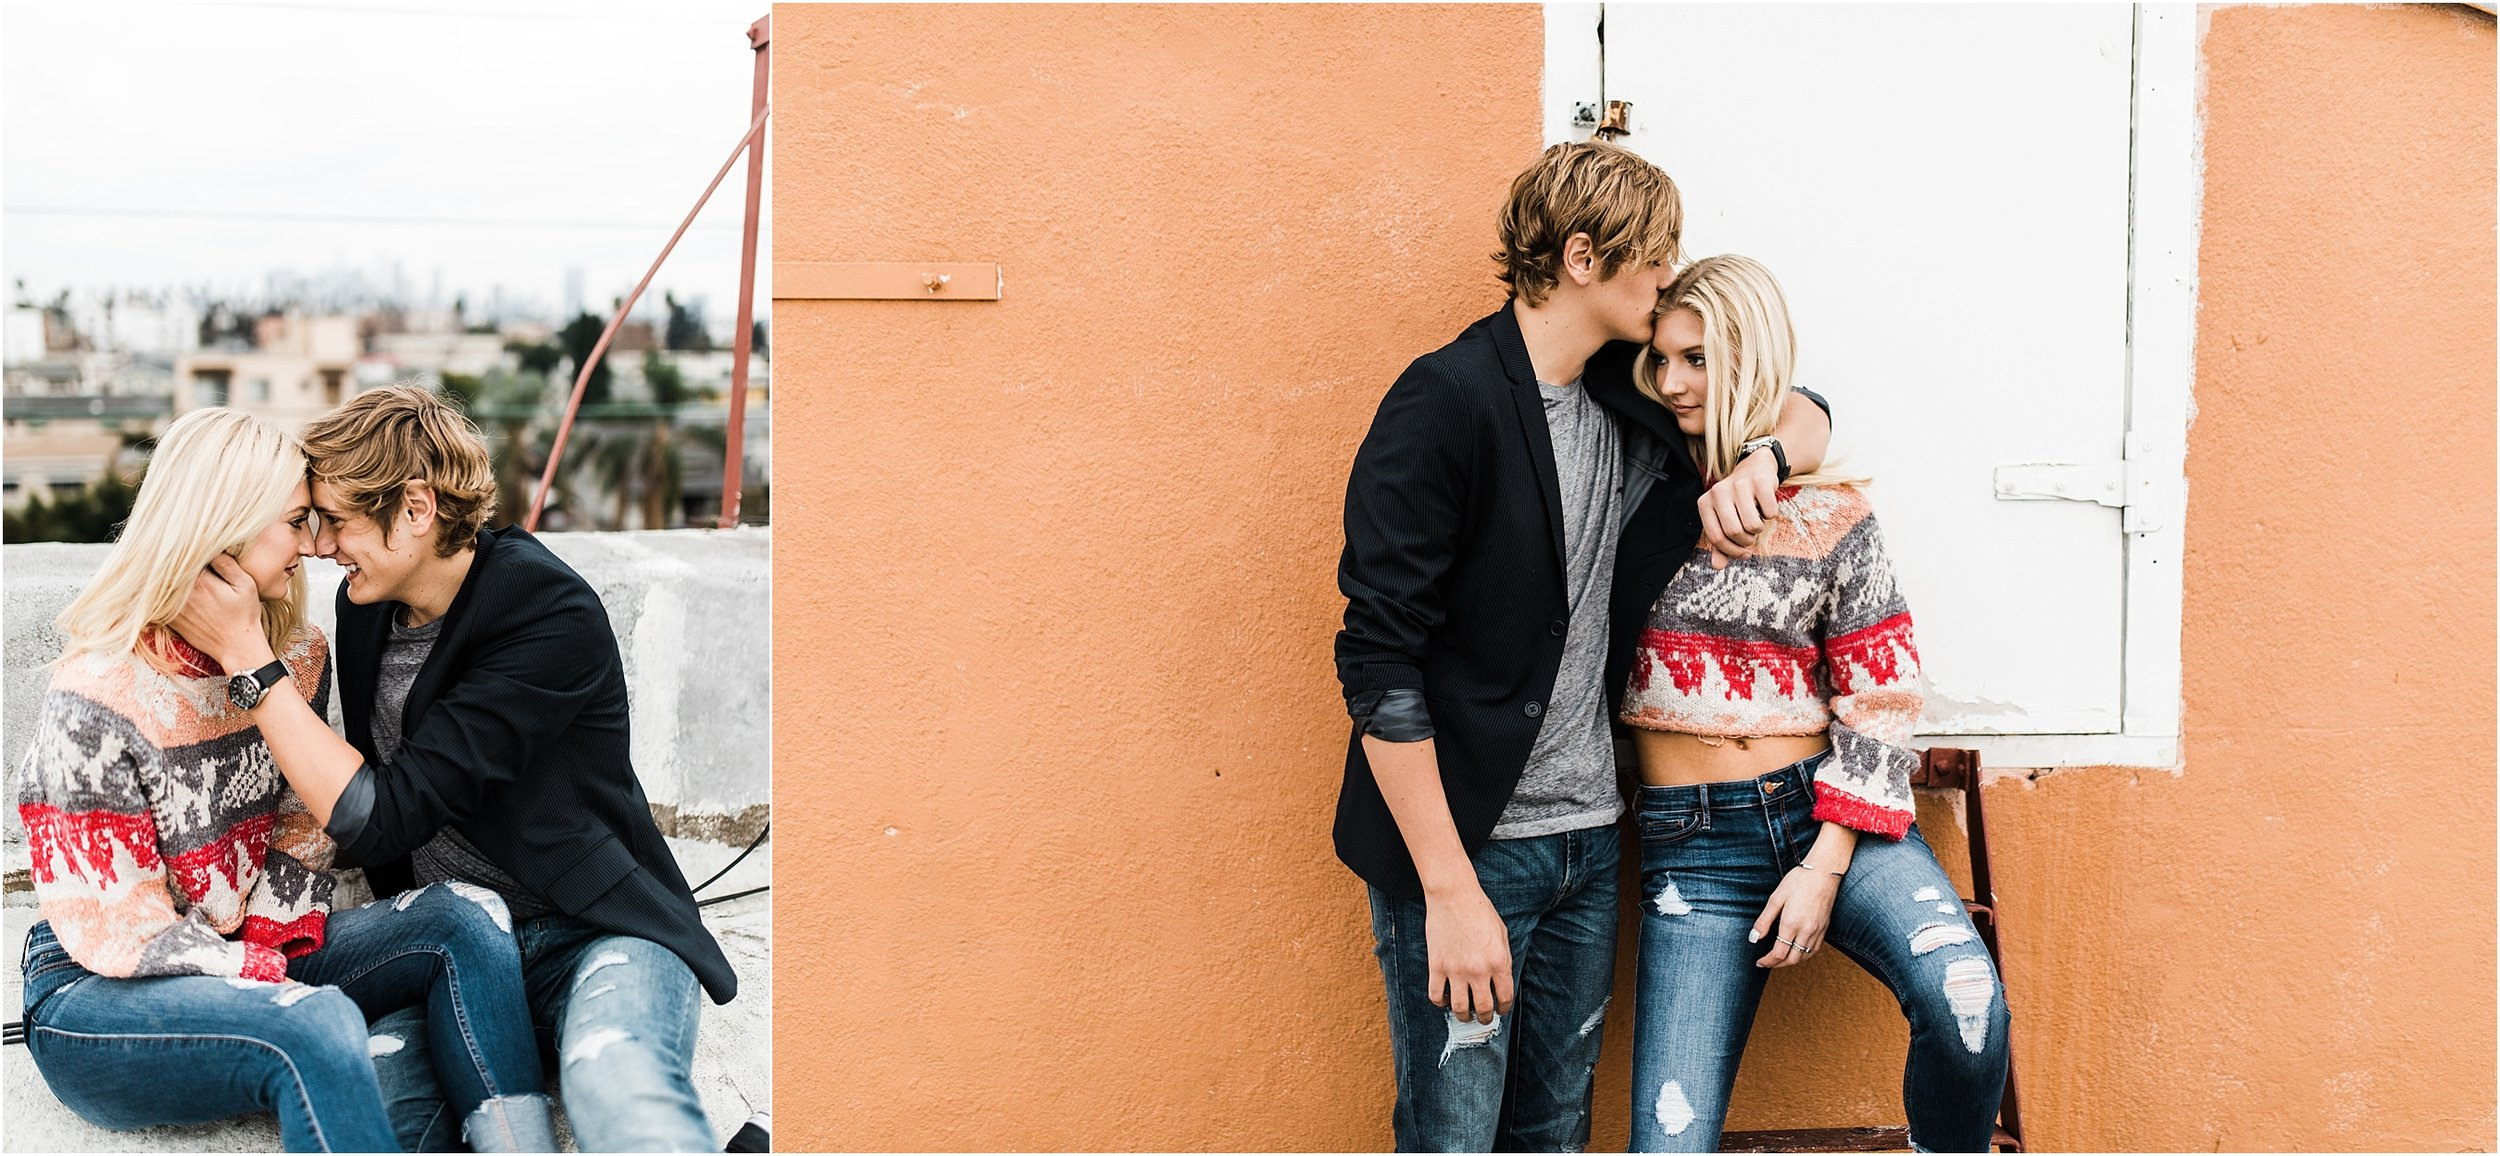 KylaLaufer&GusDeStJeor-Couples-Session-Los-Angeles-Rooftop-Sunset-Clarisse-Rae-Southern-California-Wedding-Photographer_14